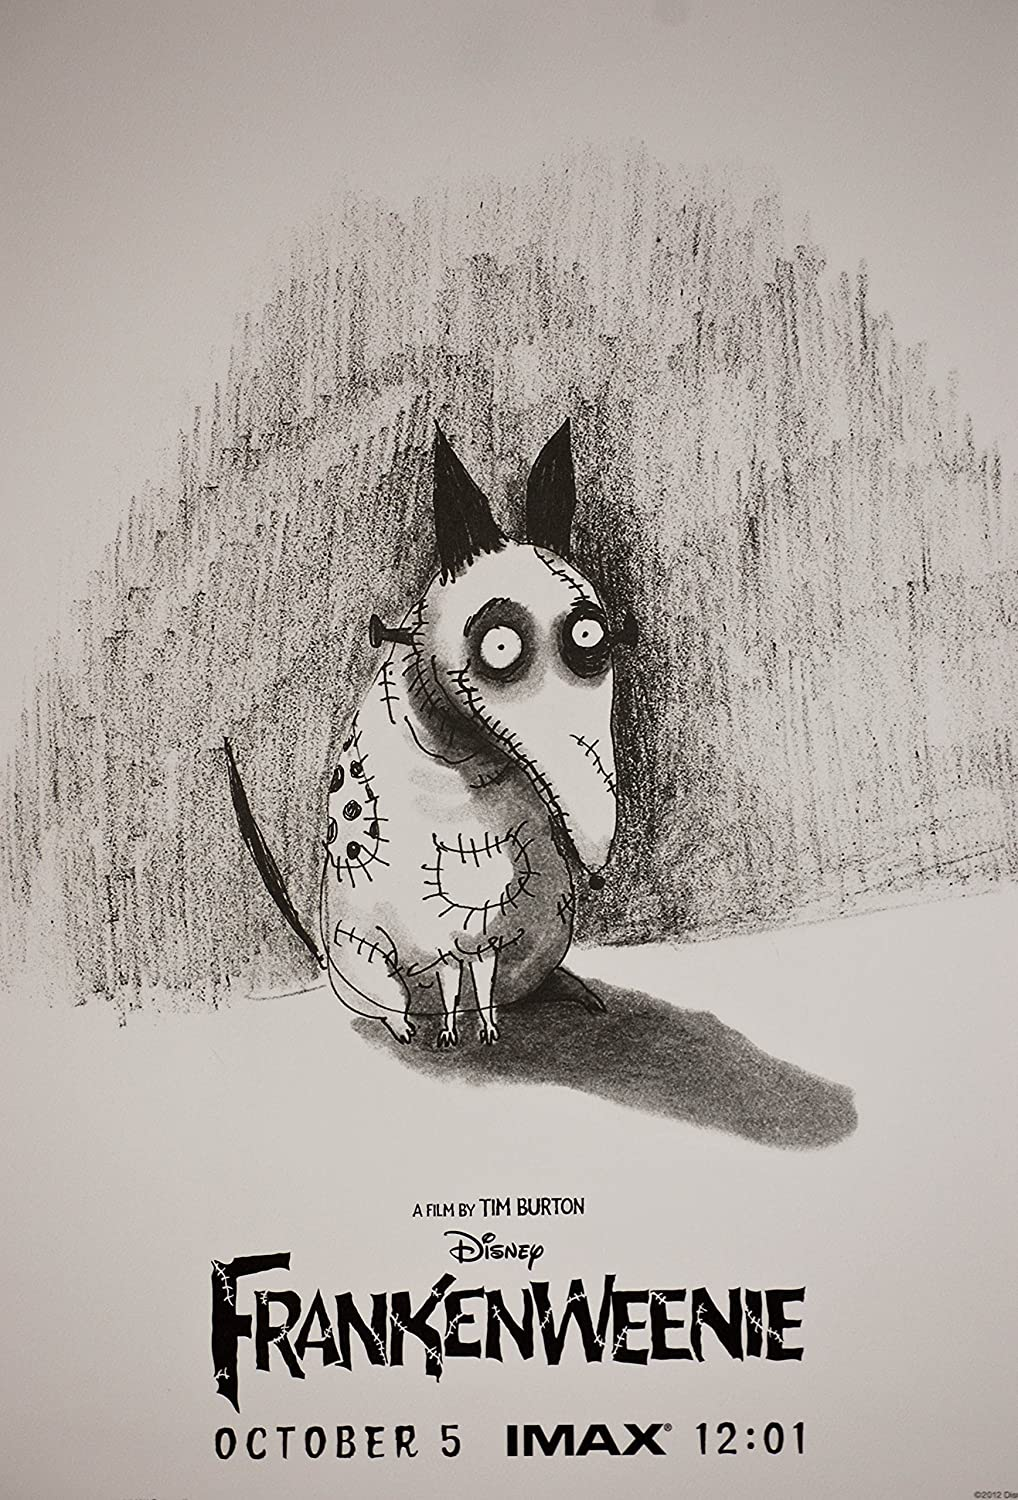 2012 Disney Imax Corp Frankenweenie October 5 Imax 12 01 A Film By Tim Burton Animation Poster Rare Mint Collectible At Amazon S Entertainment Collectibles Store